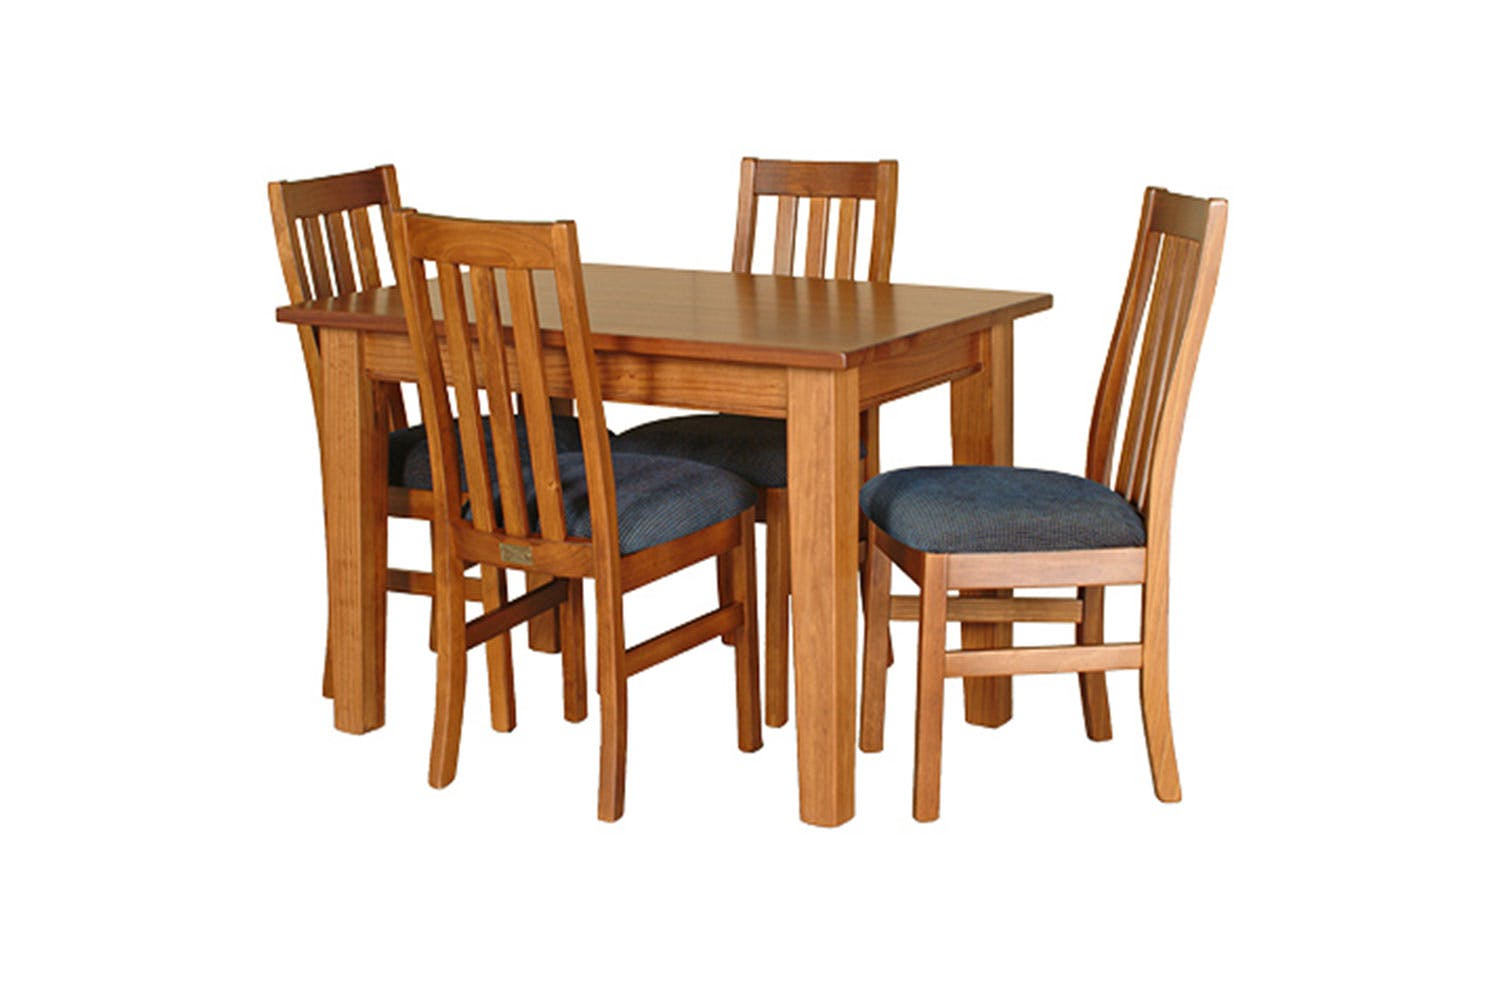 Ferngrove 5 Piece Rectangular Dining Suite By Coastwood Furniture Harvey No